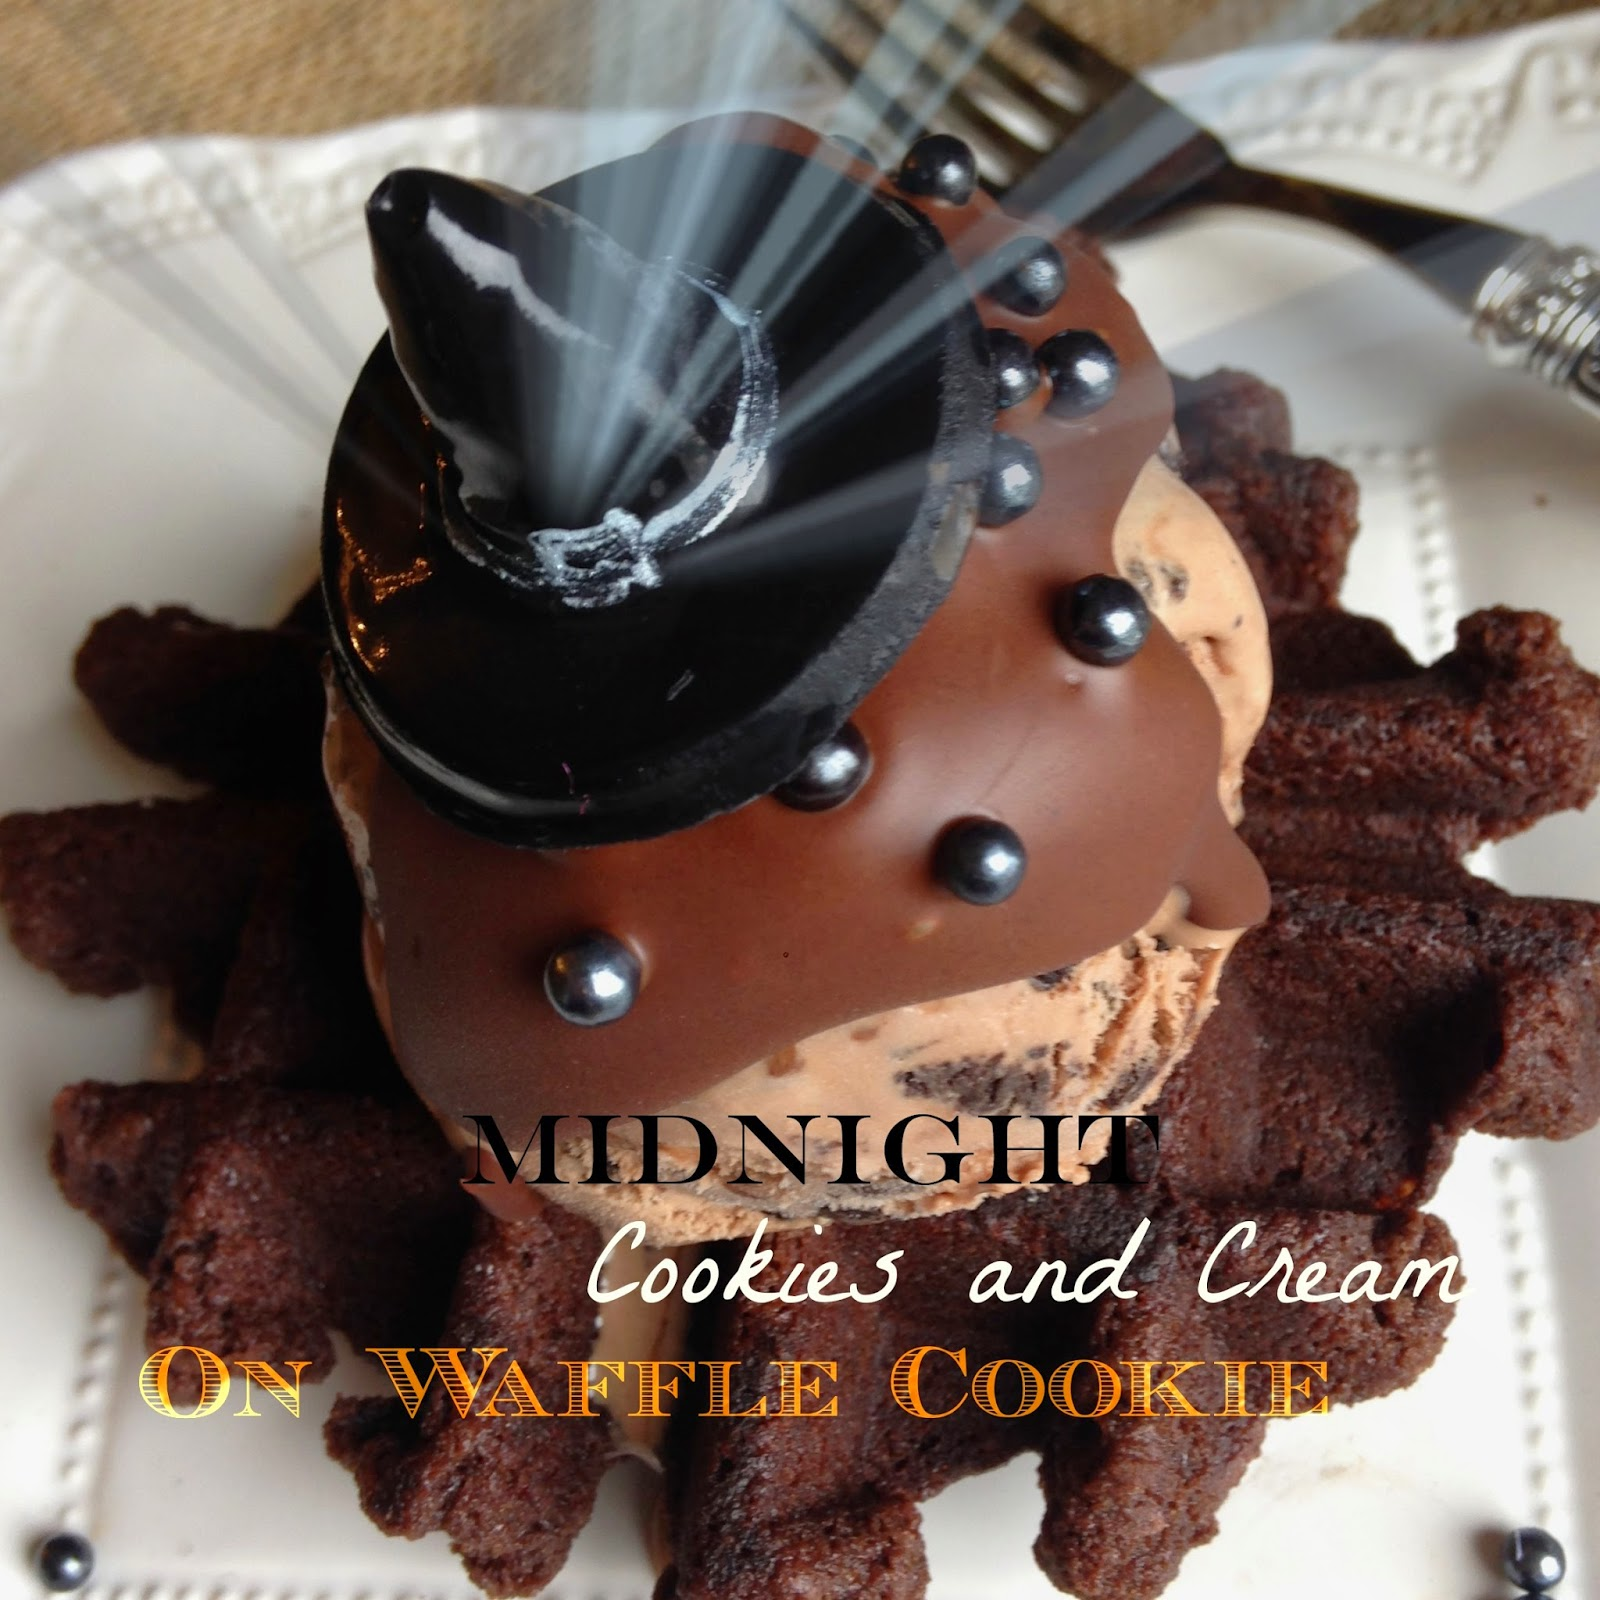 Midnight Cookies and Cream with Cookie Waffles - Purple Chocolat Home